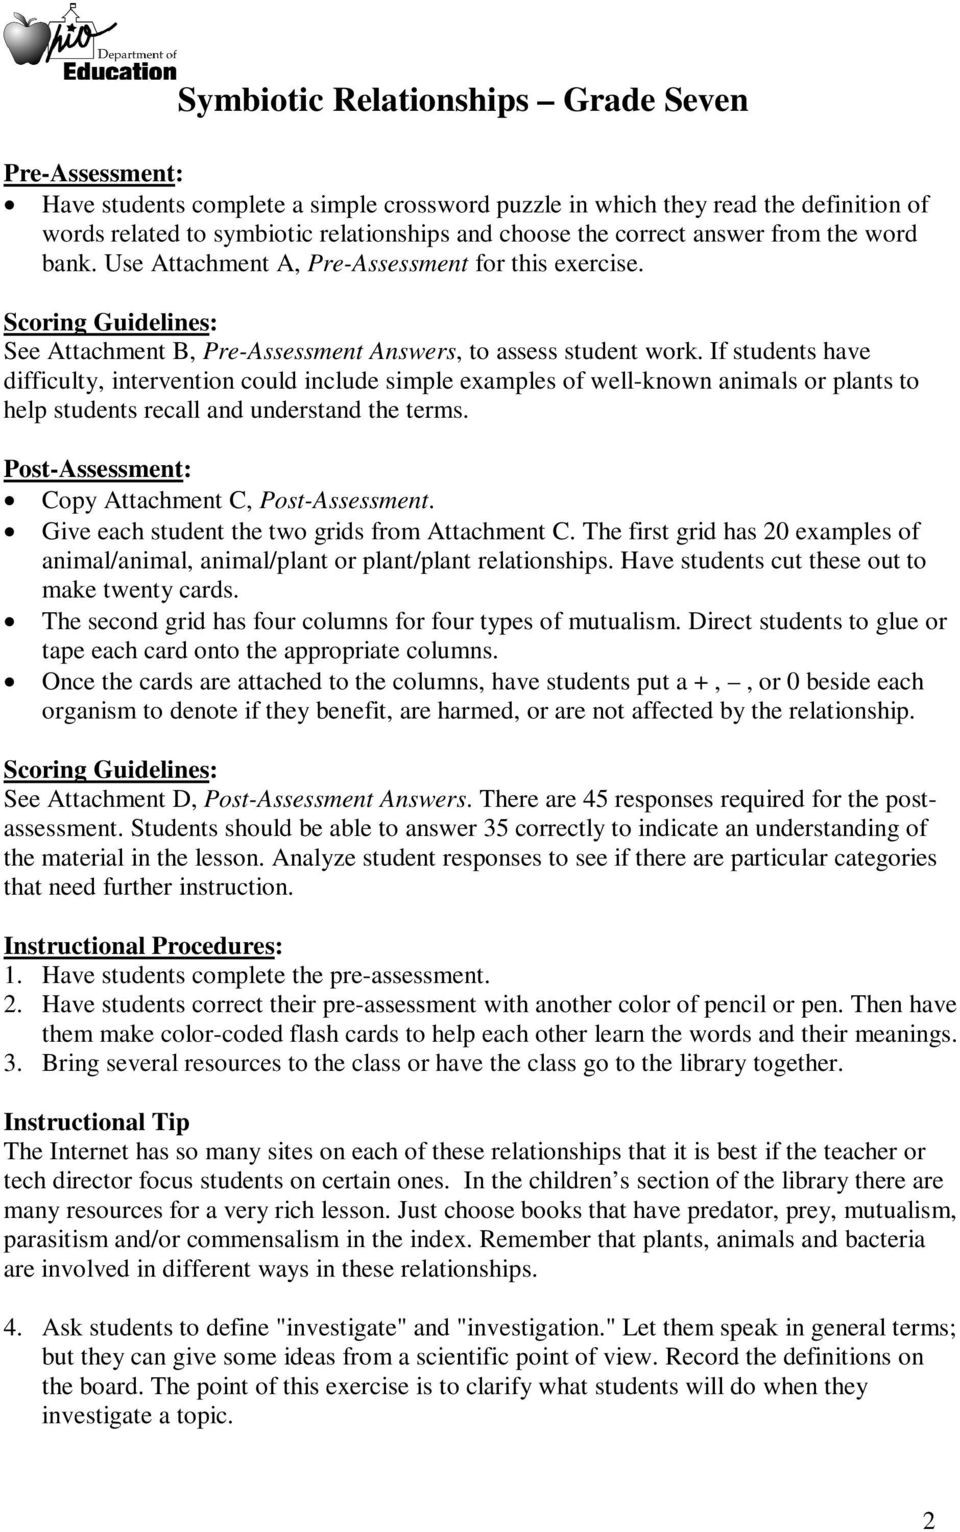 Symbiotic Relationships Worksheet Answers Types Symbiosis Worksheet Answer Key Promotiontablecovers